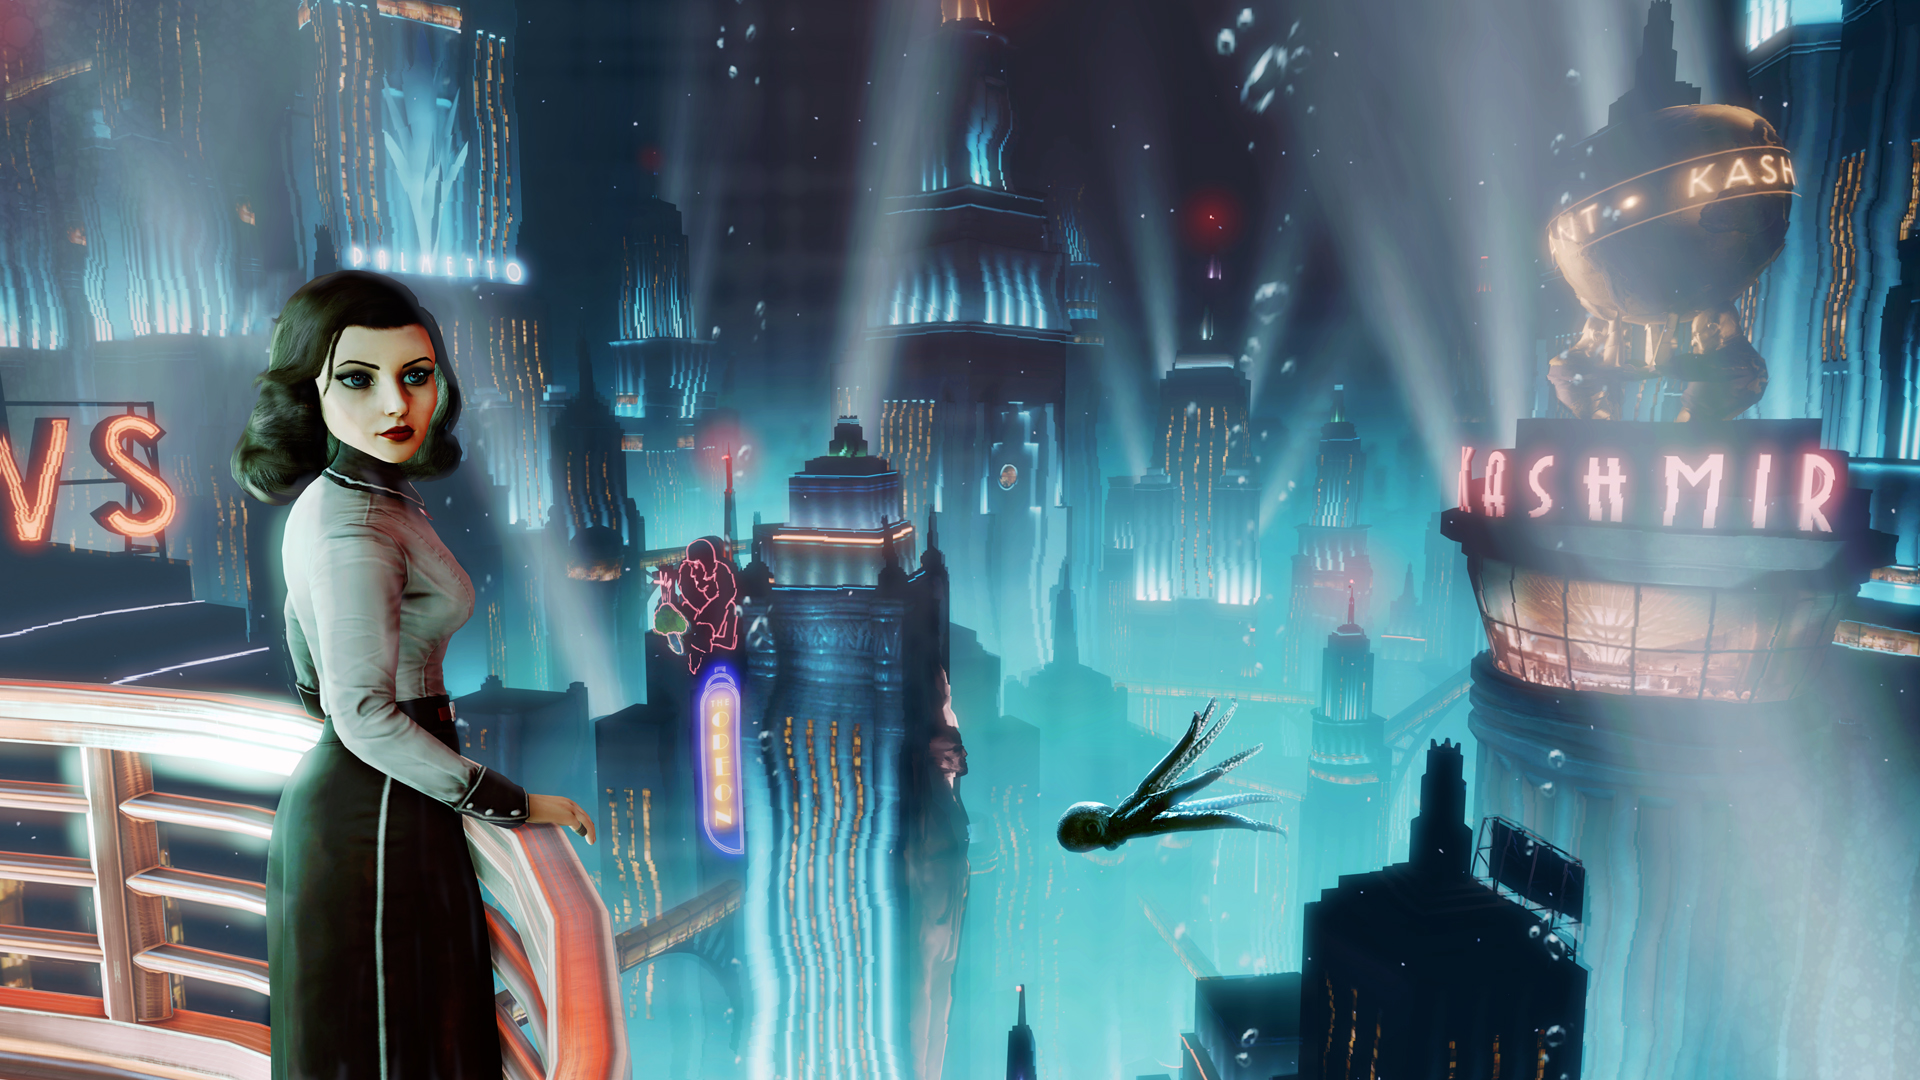 BioShock Infinite's Burial at Sea DLC is familiar and strange all at the same time.